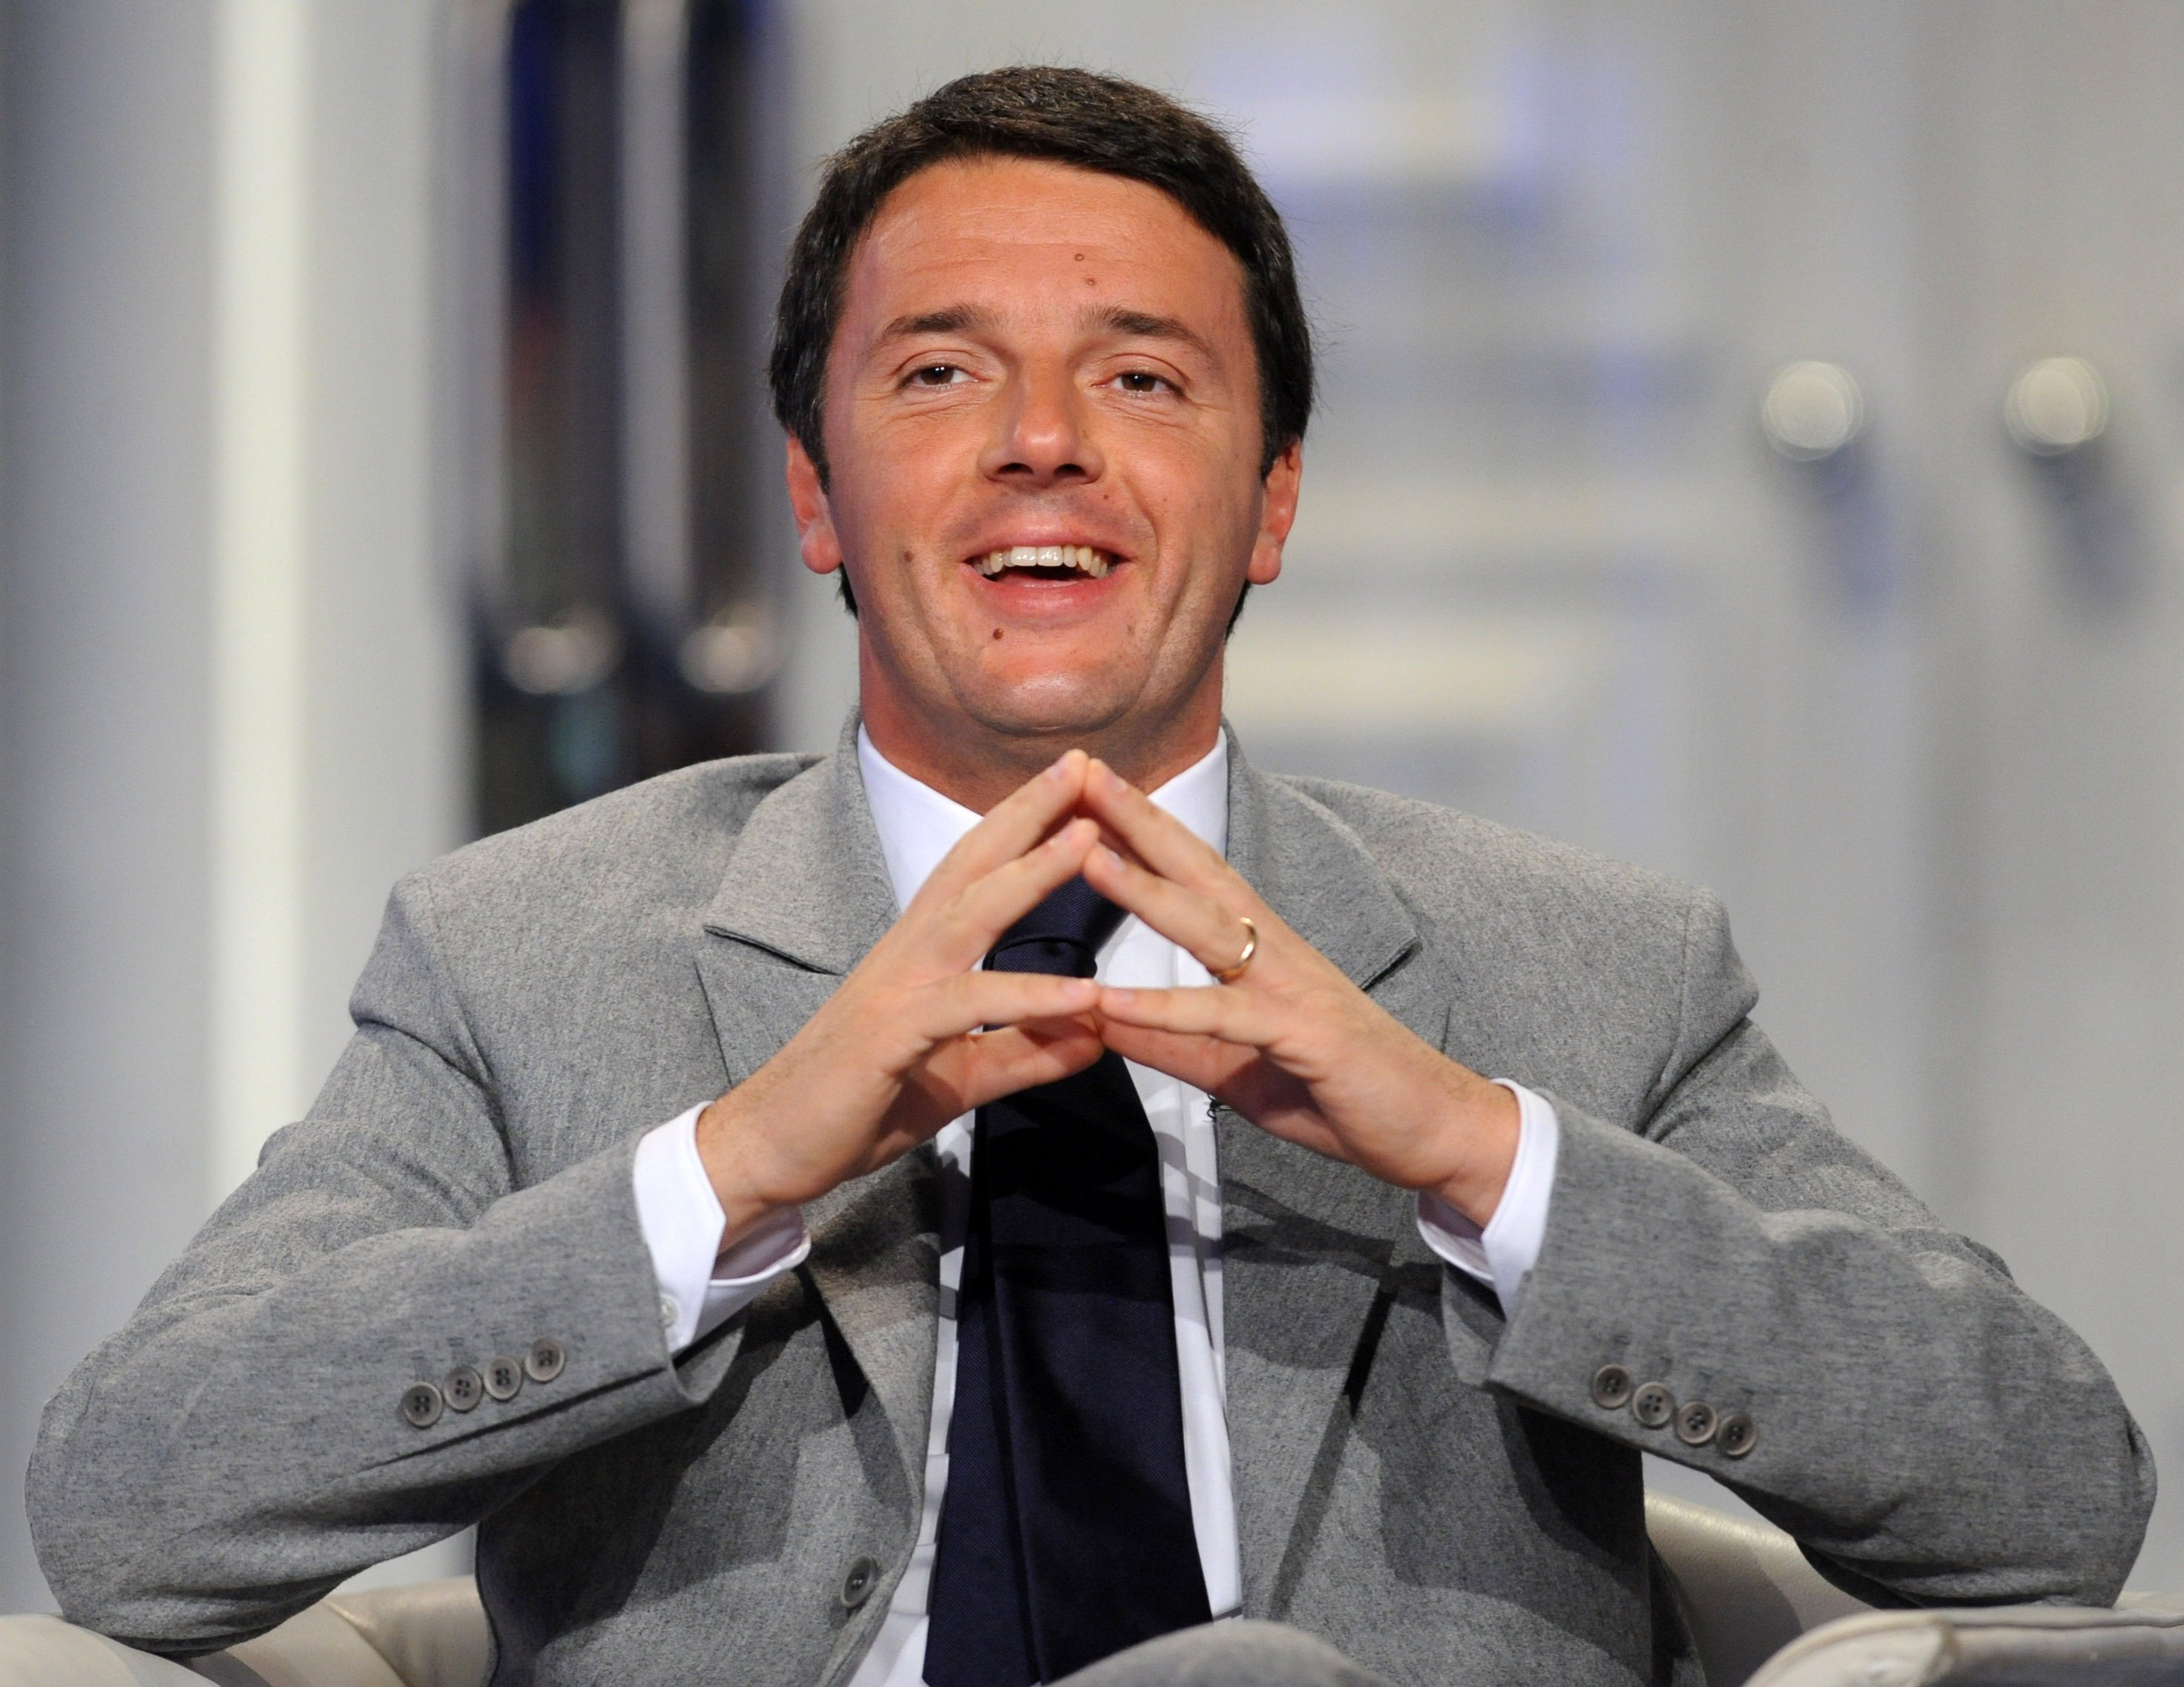 Immigrati, Renzi serve diritto d'asilo europeo